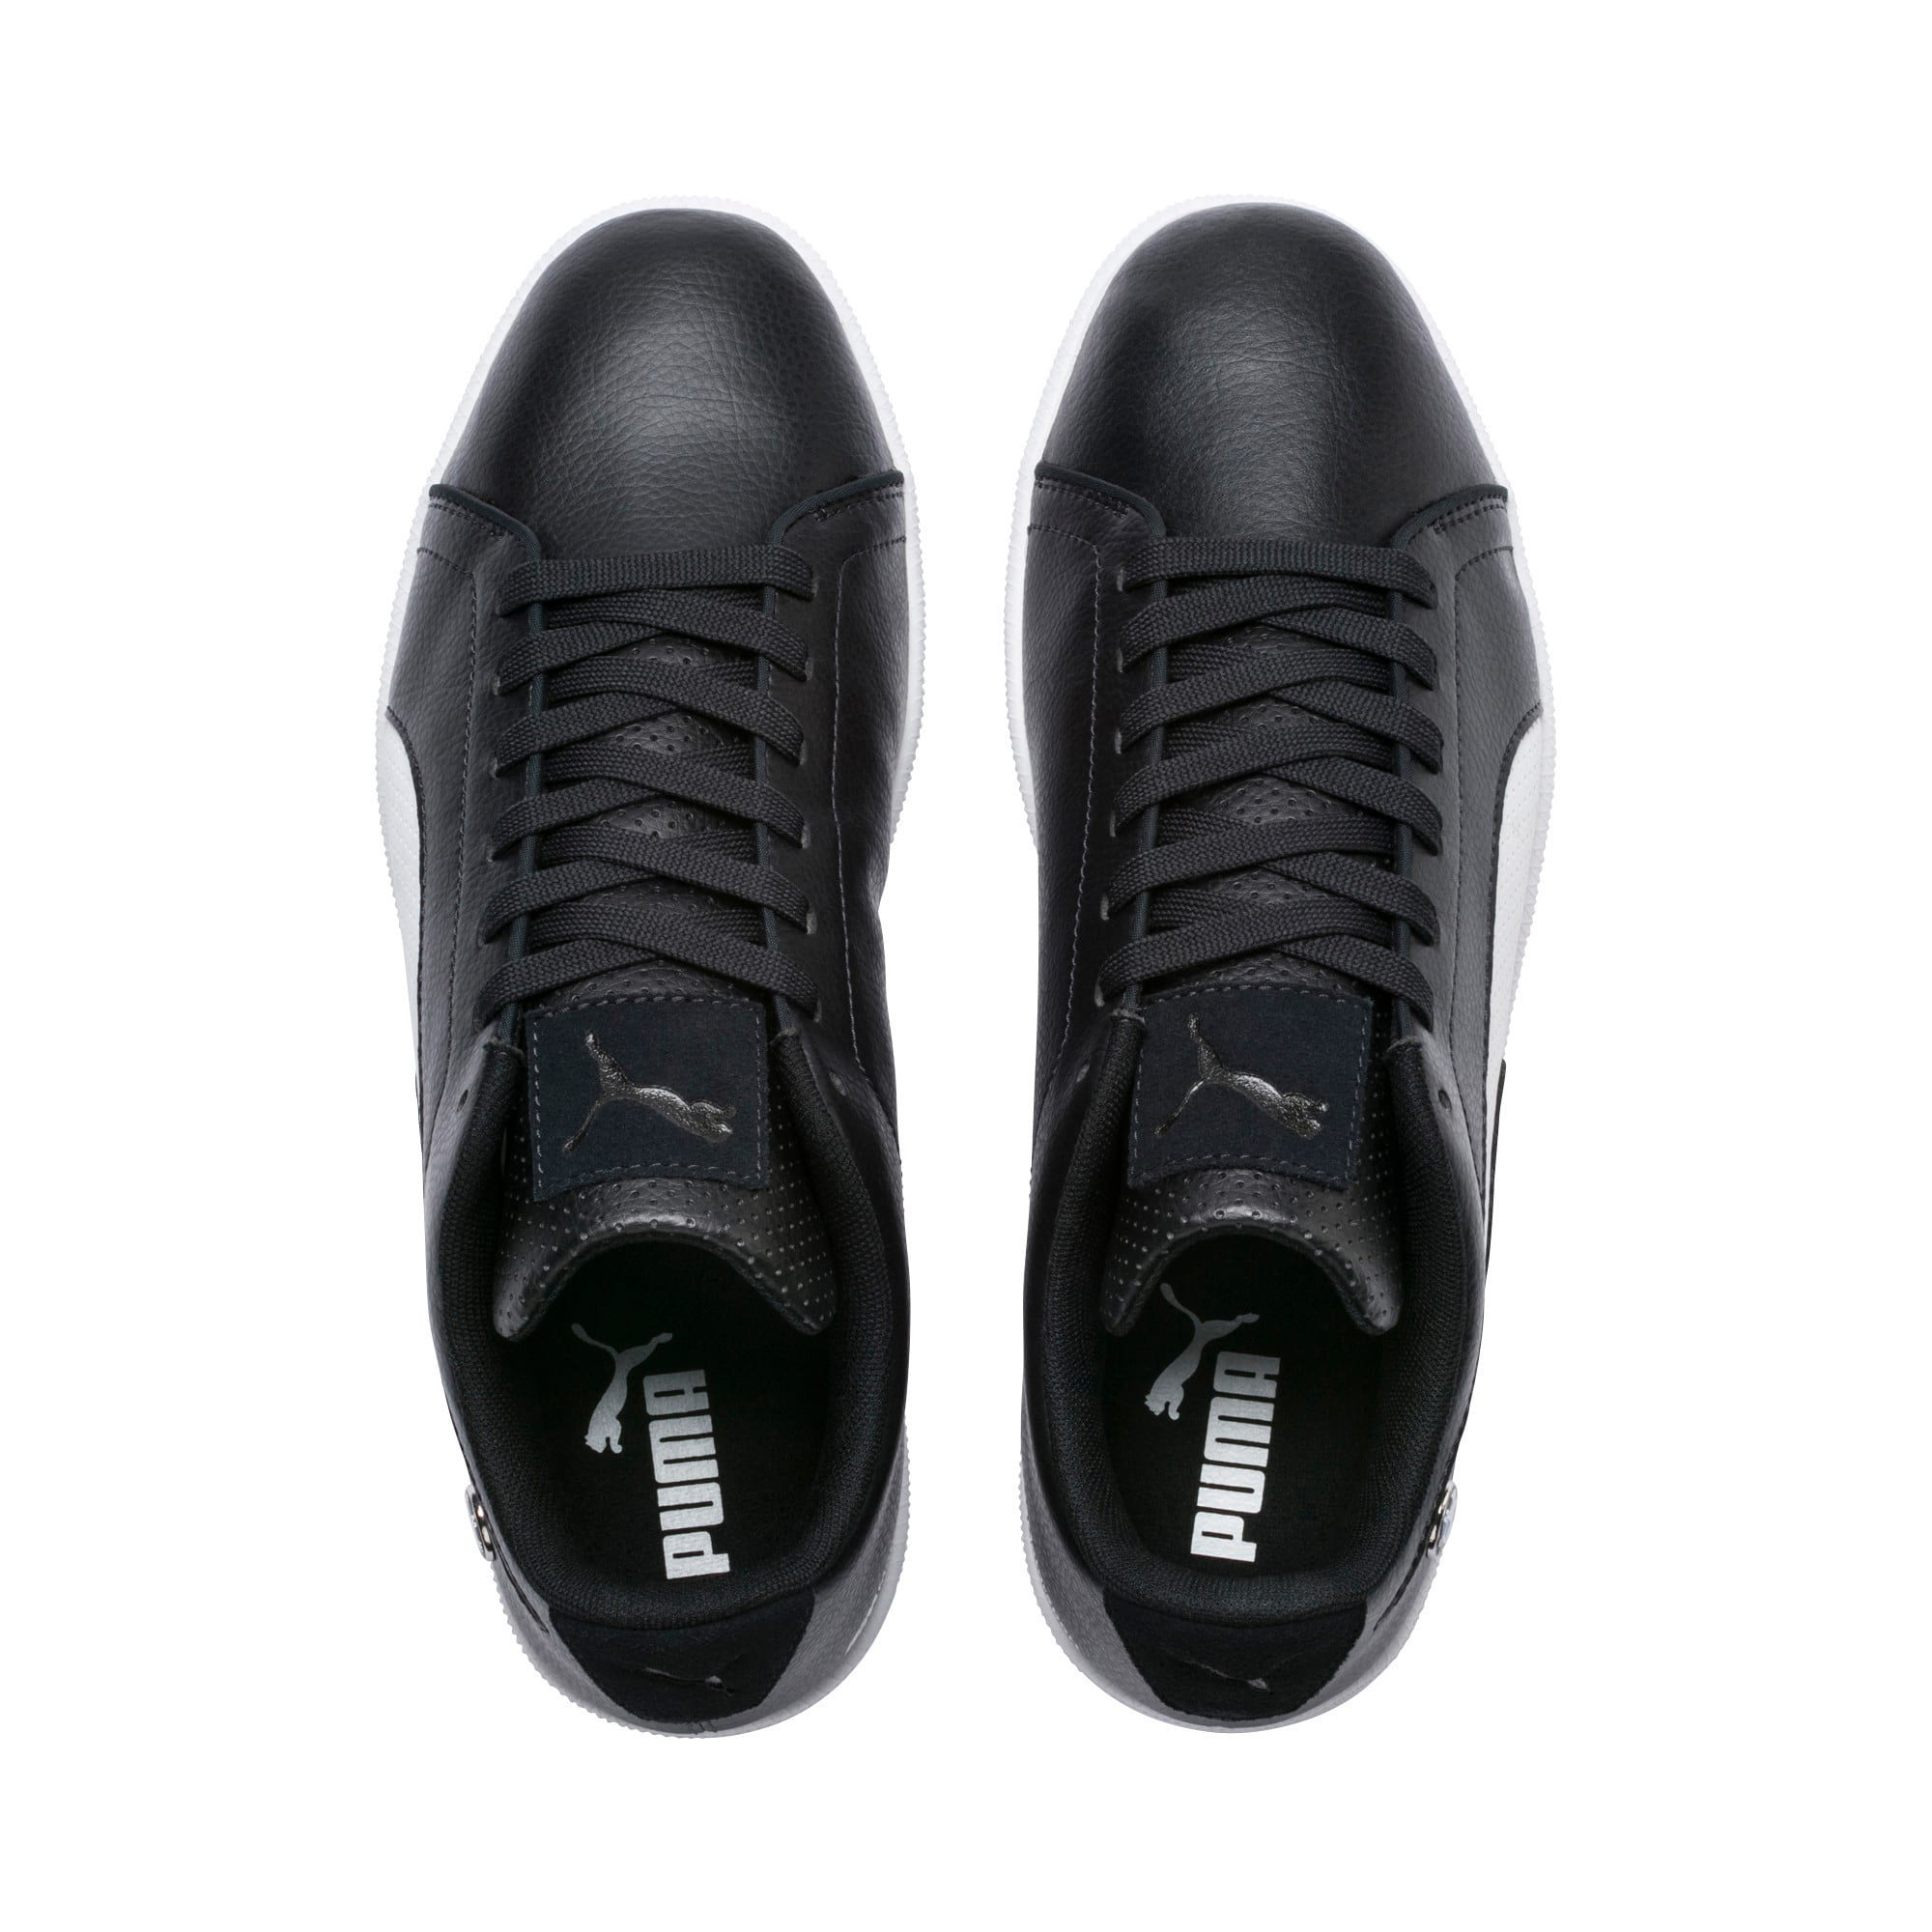 Thumbnail 4 of BMW M Motorsport Court Perf Trainers, Anthracite-Puma White, medium-IND